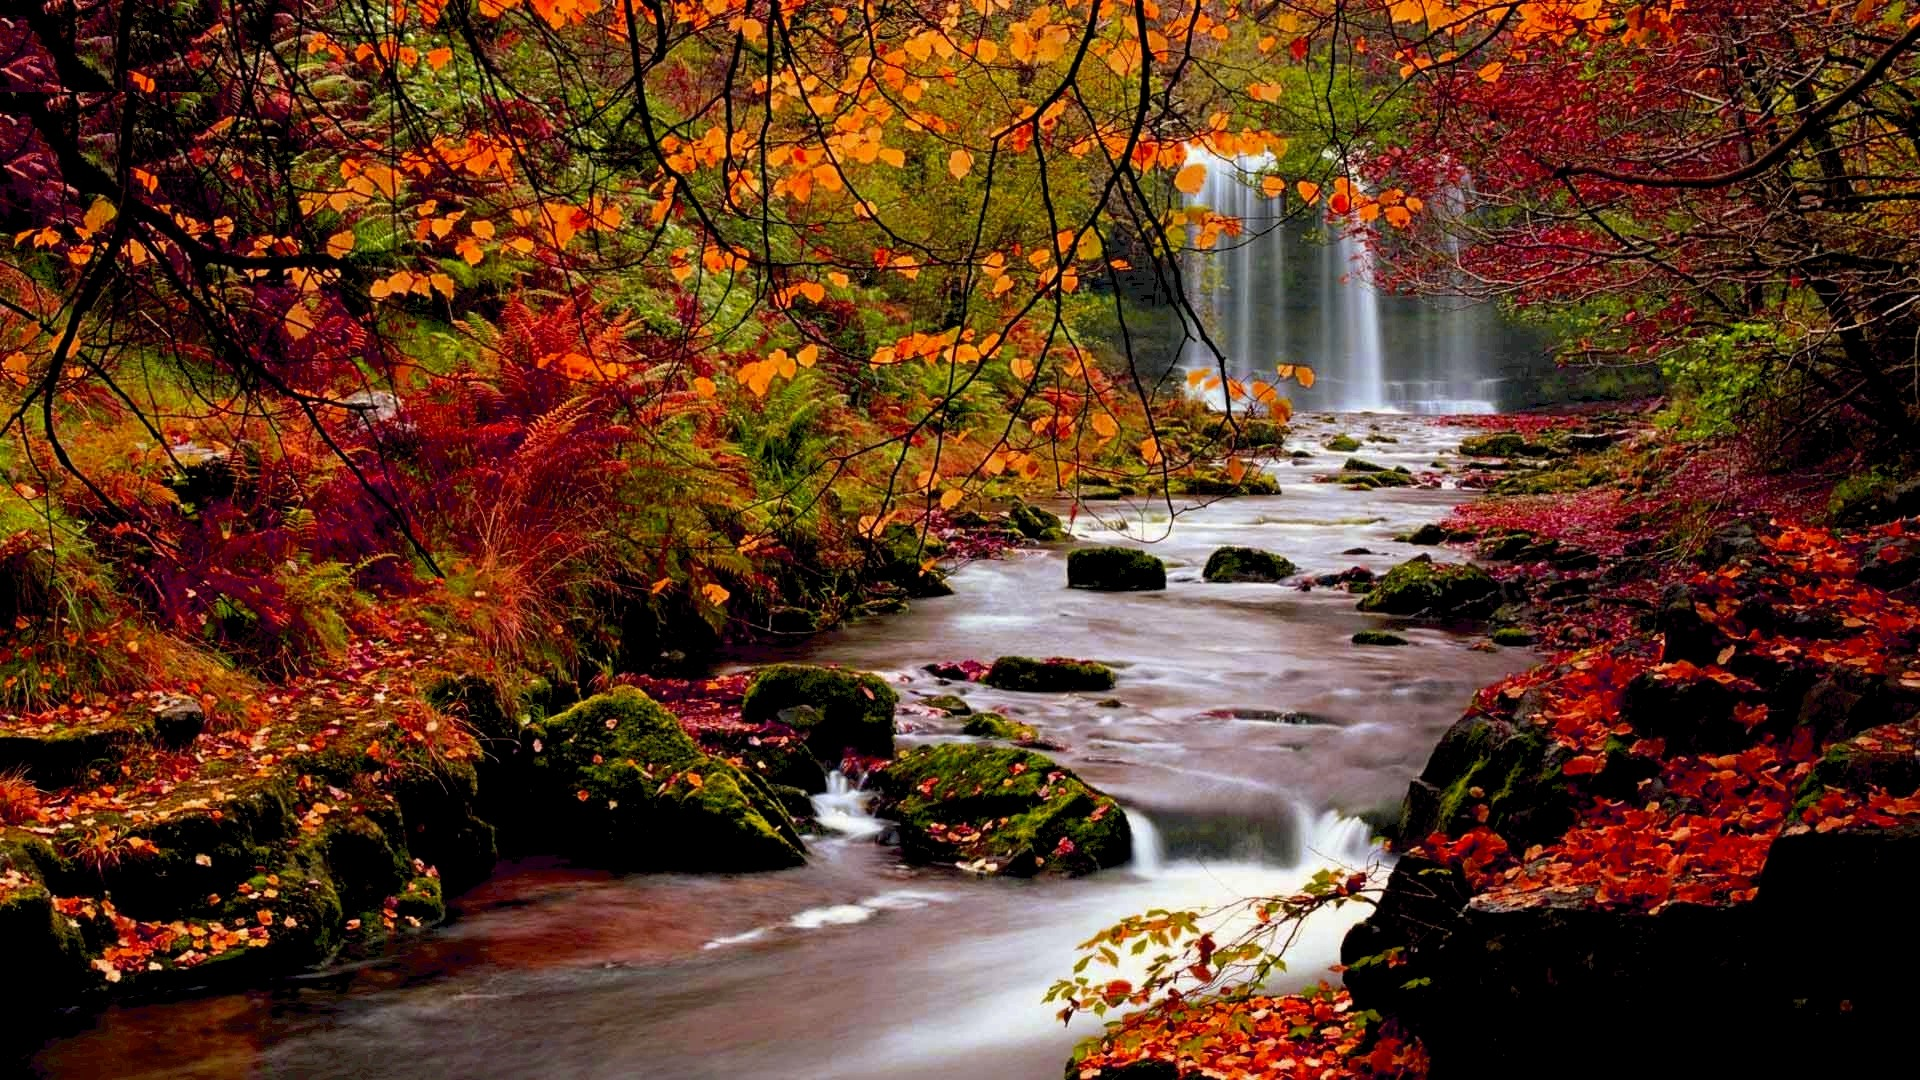 Res: 1920x1080, Hd wallpapers nature fall67.jpg